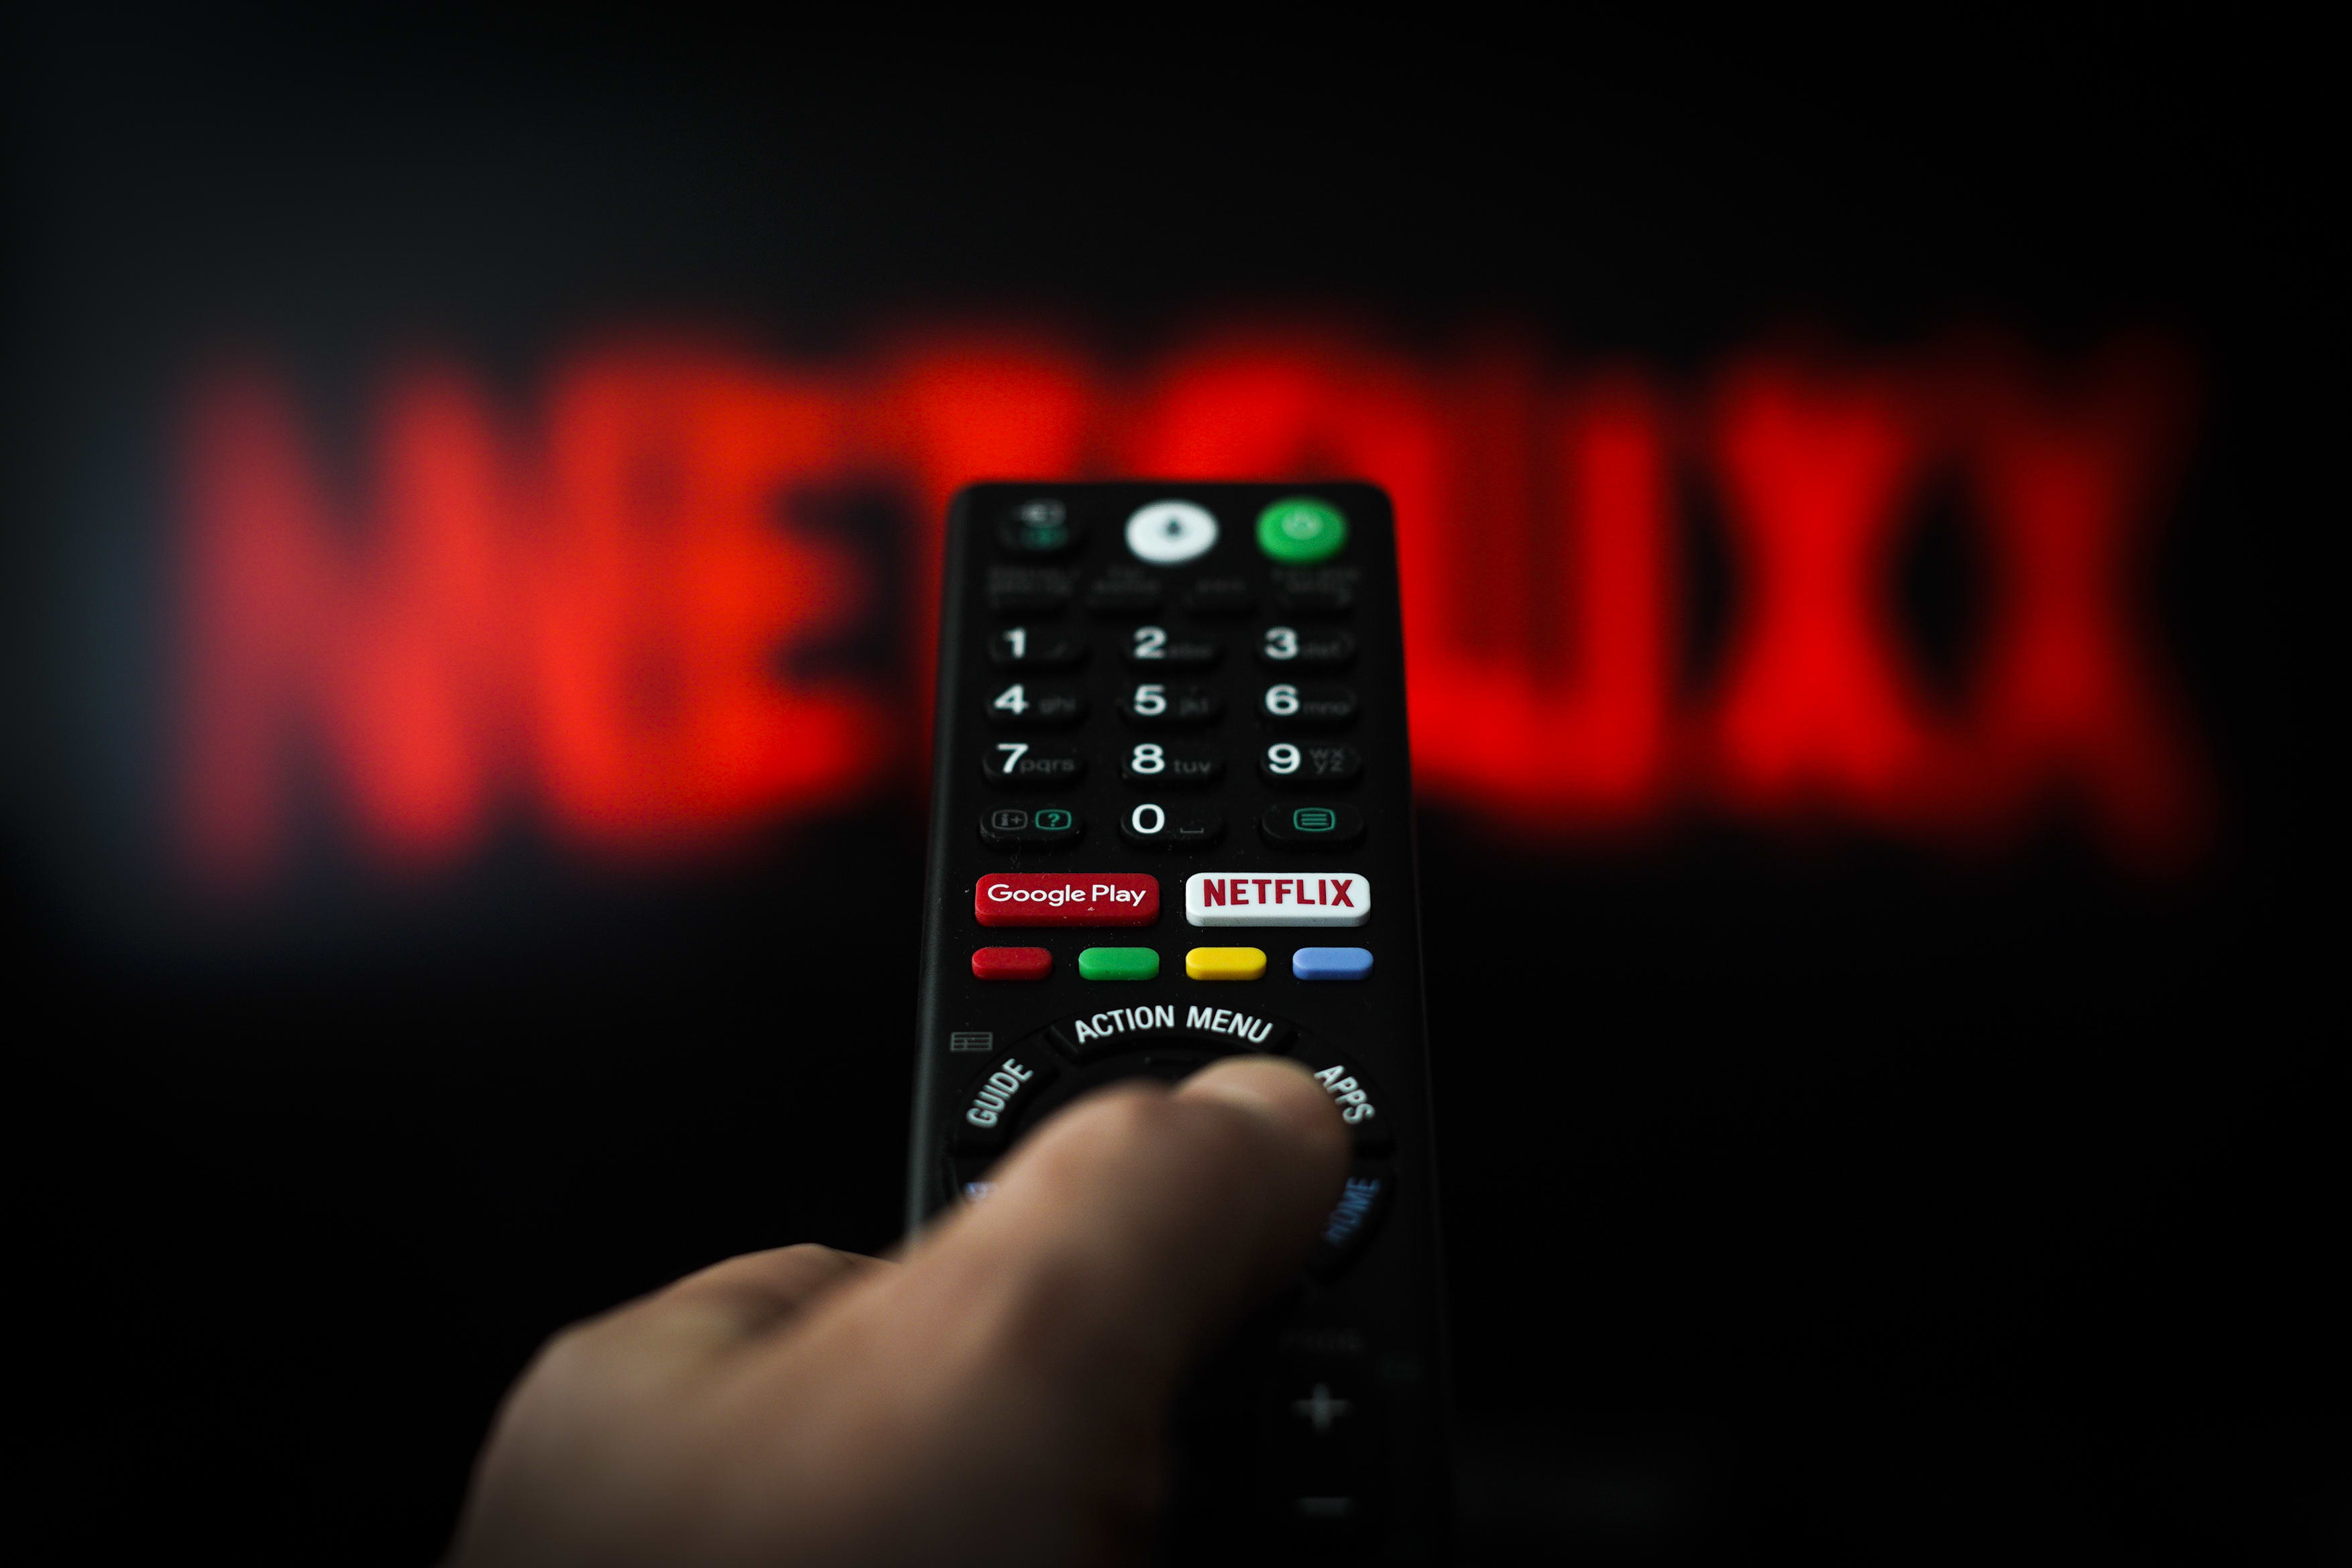 Netflix is one of the best S&P 500 performers this week amid fears of the coronavirus